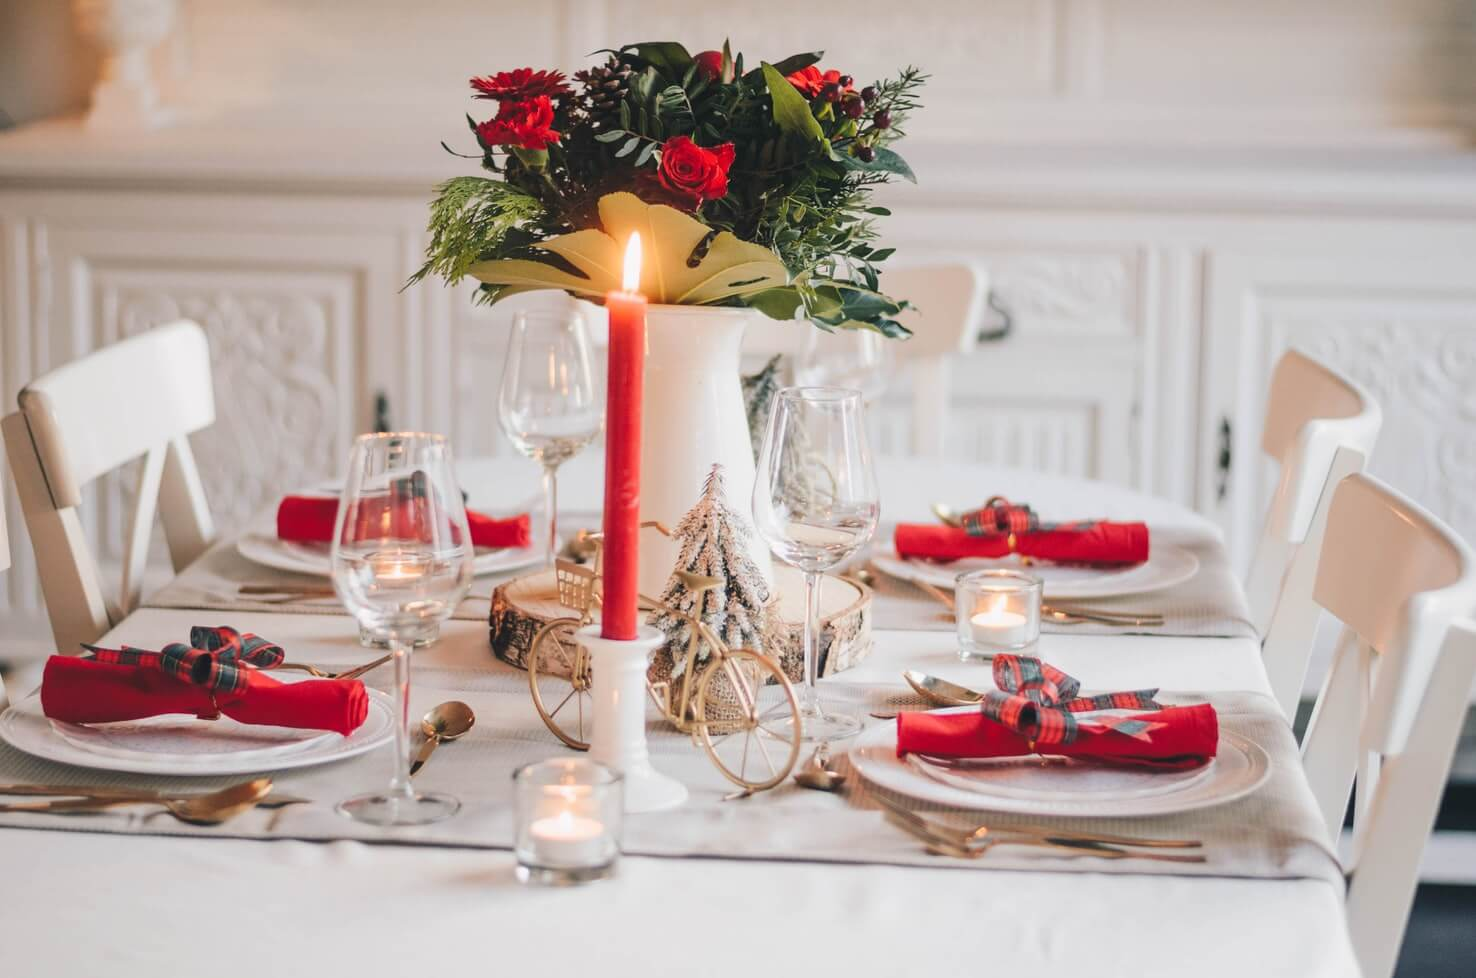 a table set with red napkins, candels and roses for festive hosting